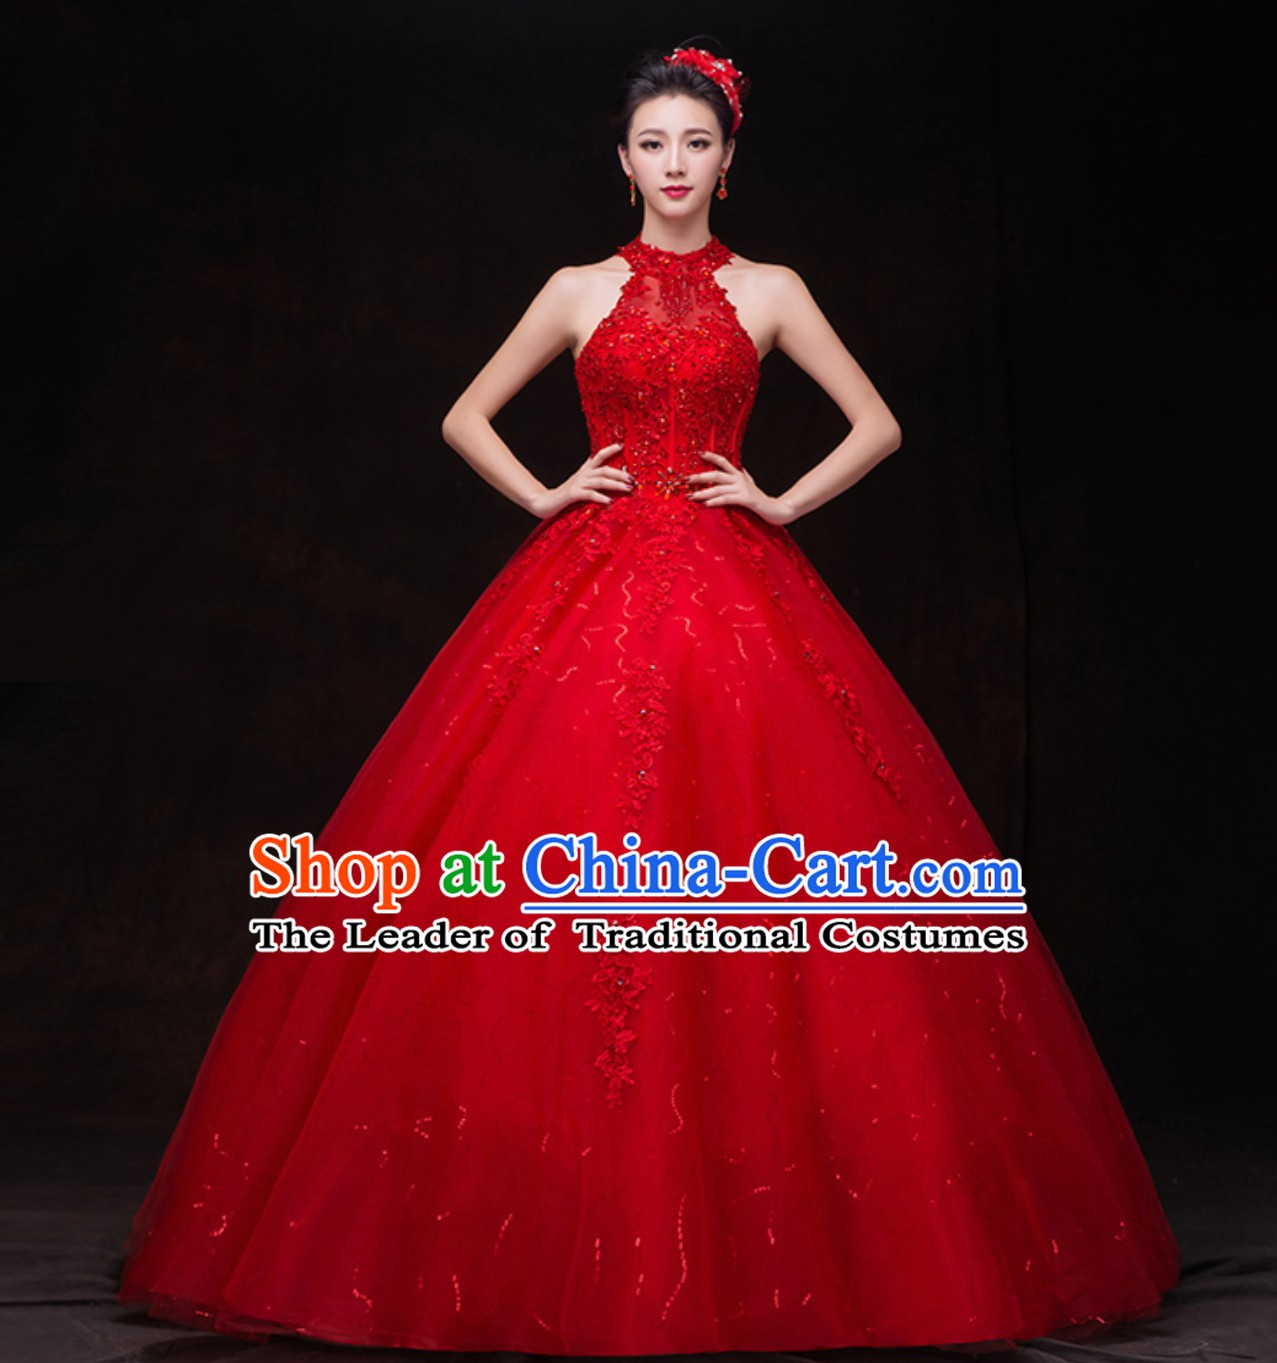 Top Romantic Handmade Princess Red Wedding Dresses